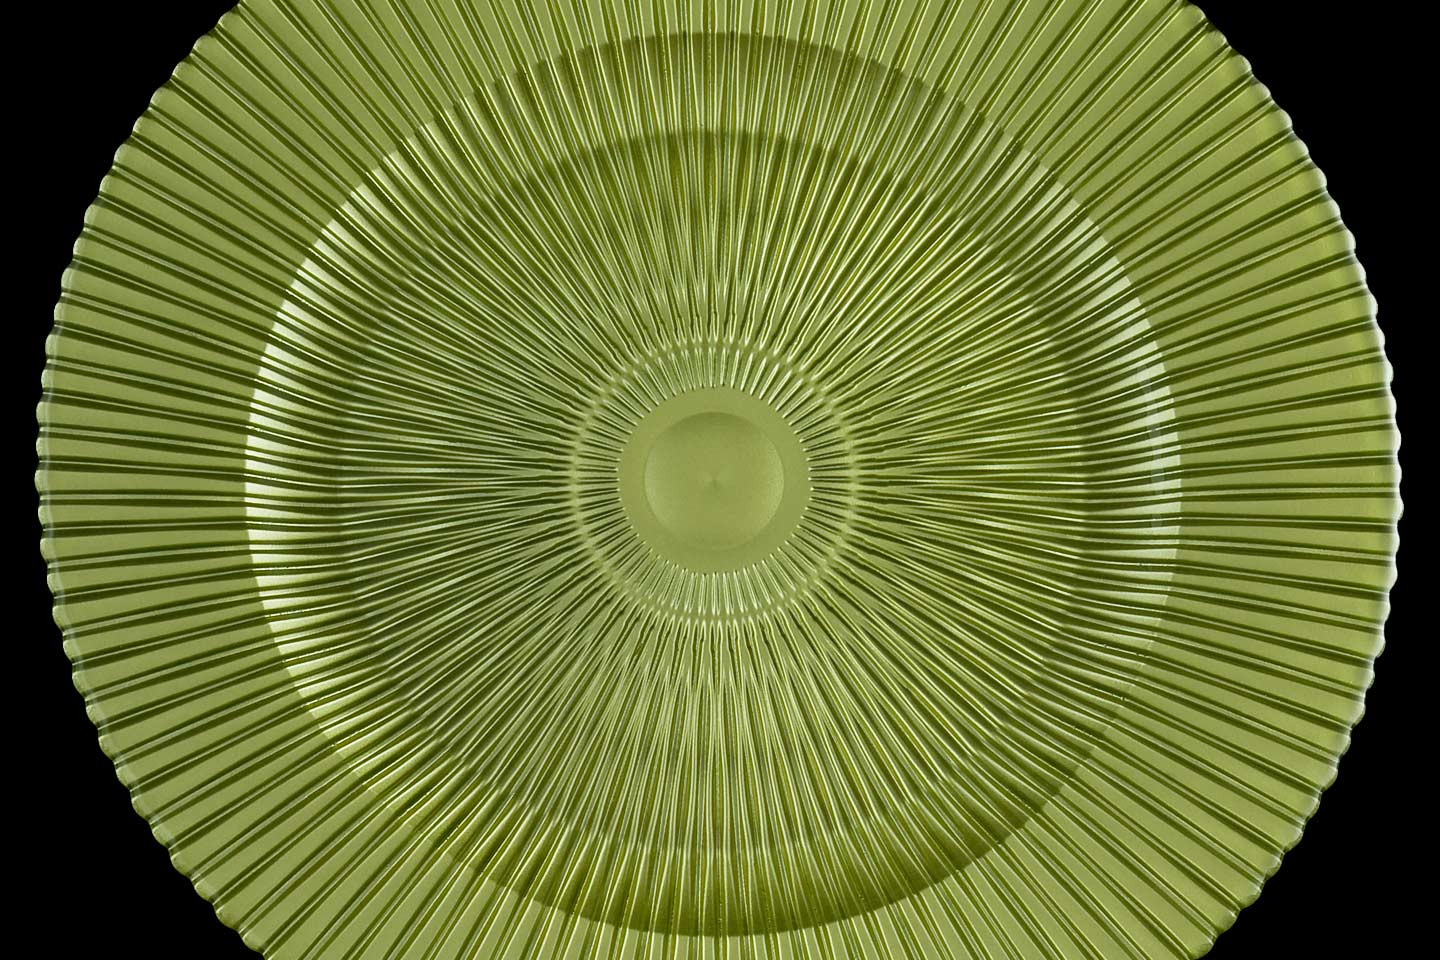 the citron green marbella charger plate from mandarin orange trading company, photographed by Jacob Rosenfeld